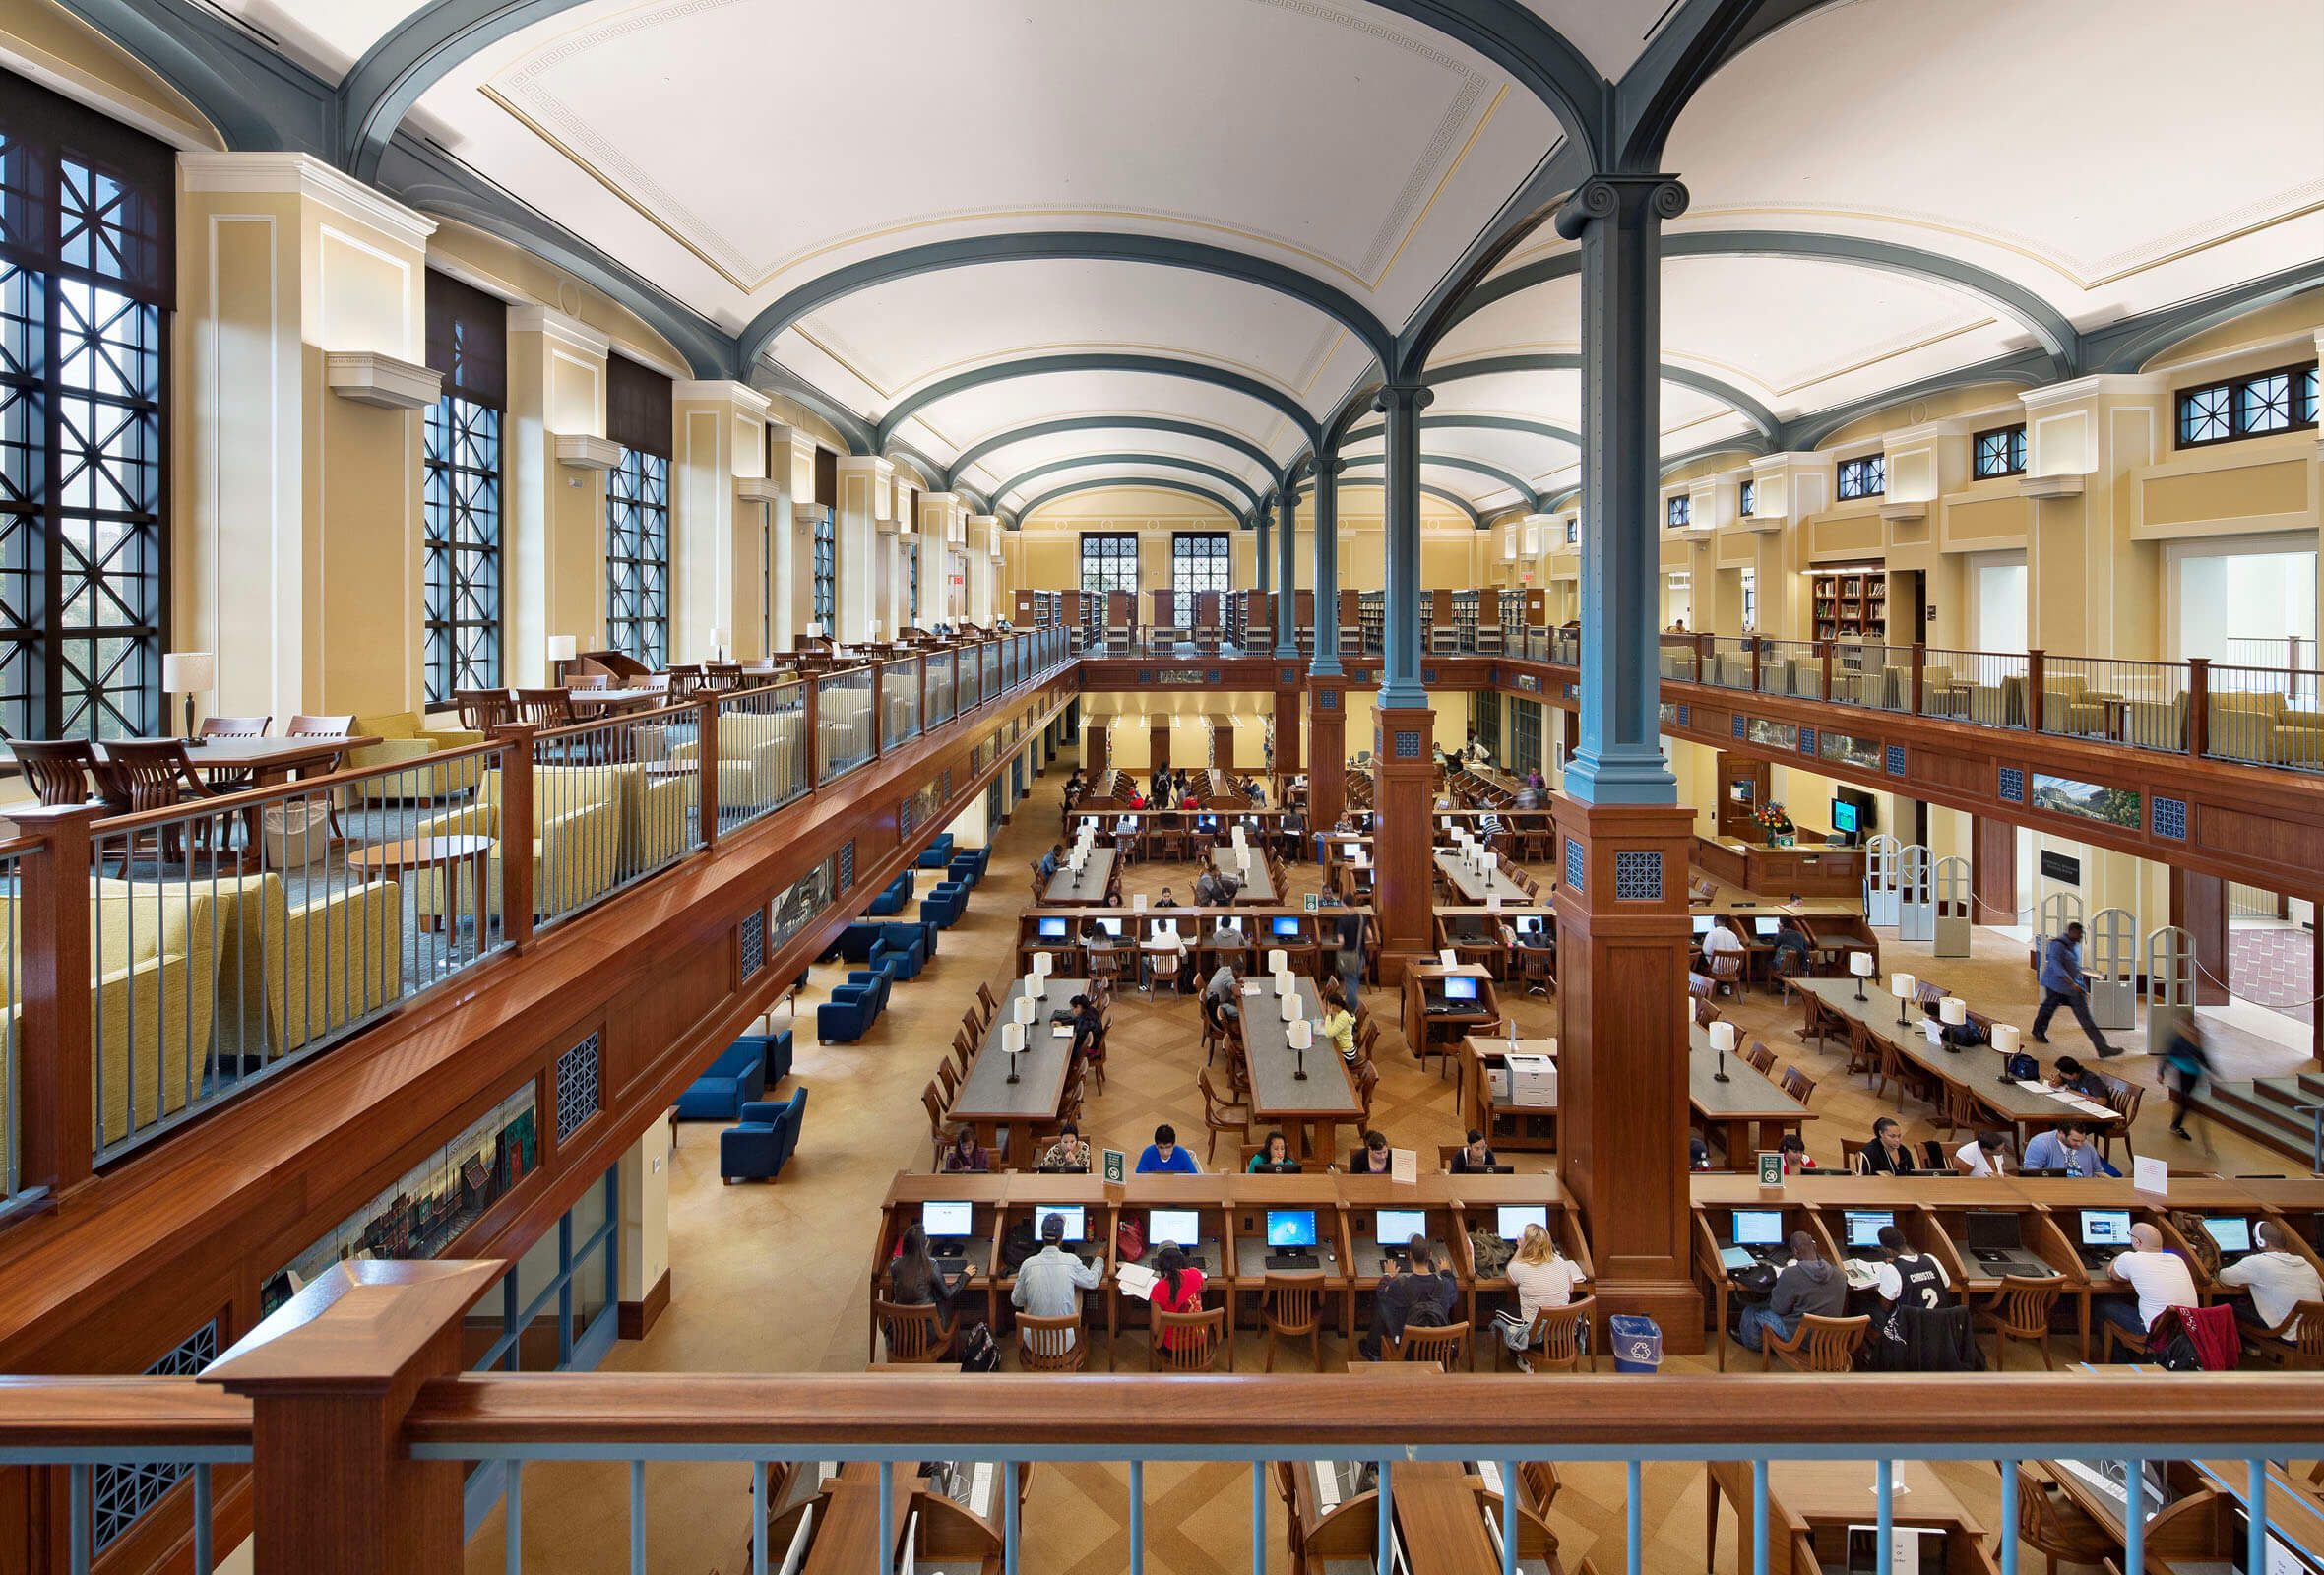 BCC Archives & Special Collections